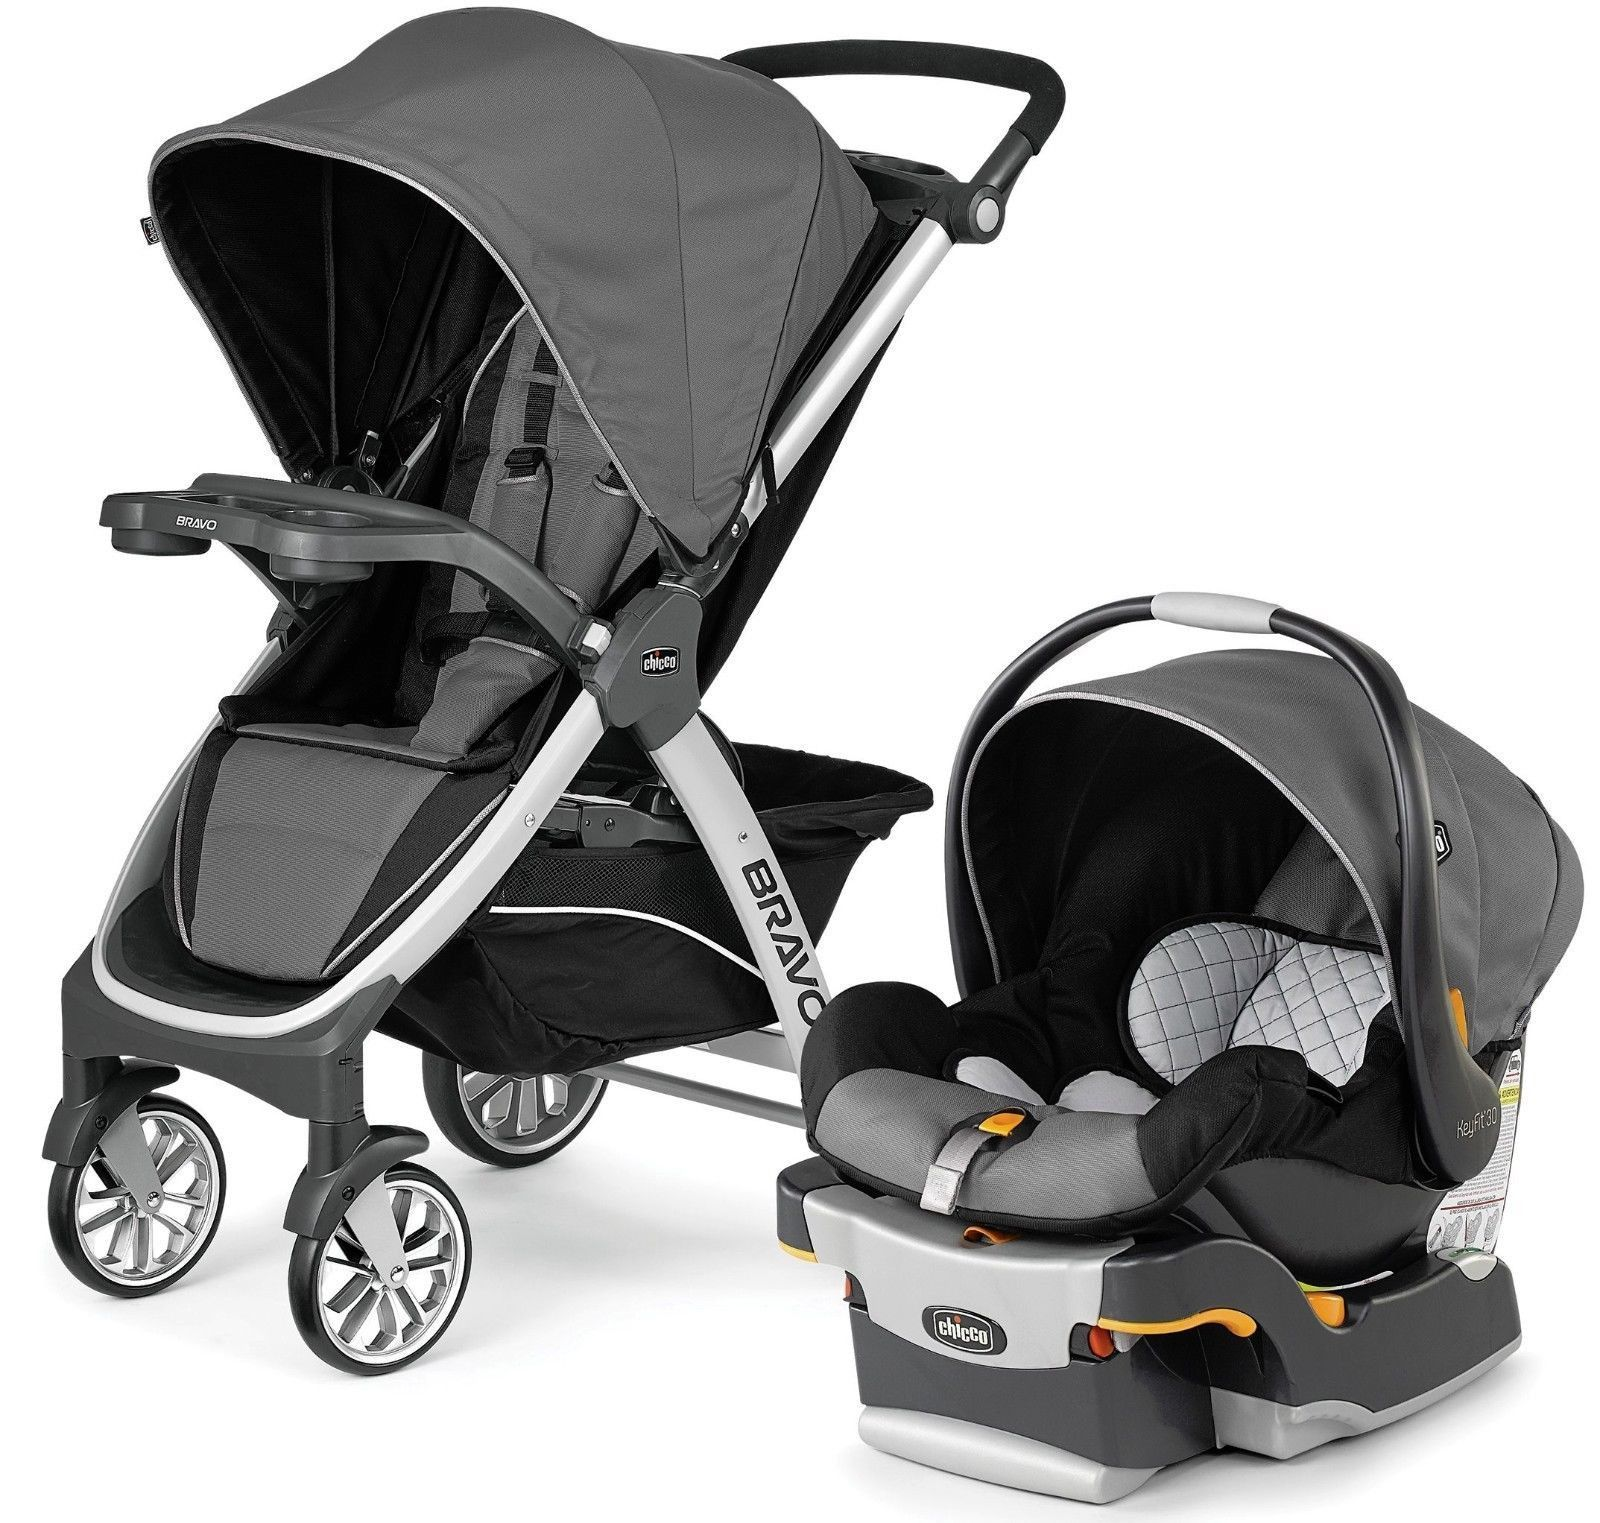 Chicco Bravo Trio Travel System 3 in 1 Baby Travel System Stroller Orion Discover